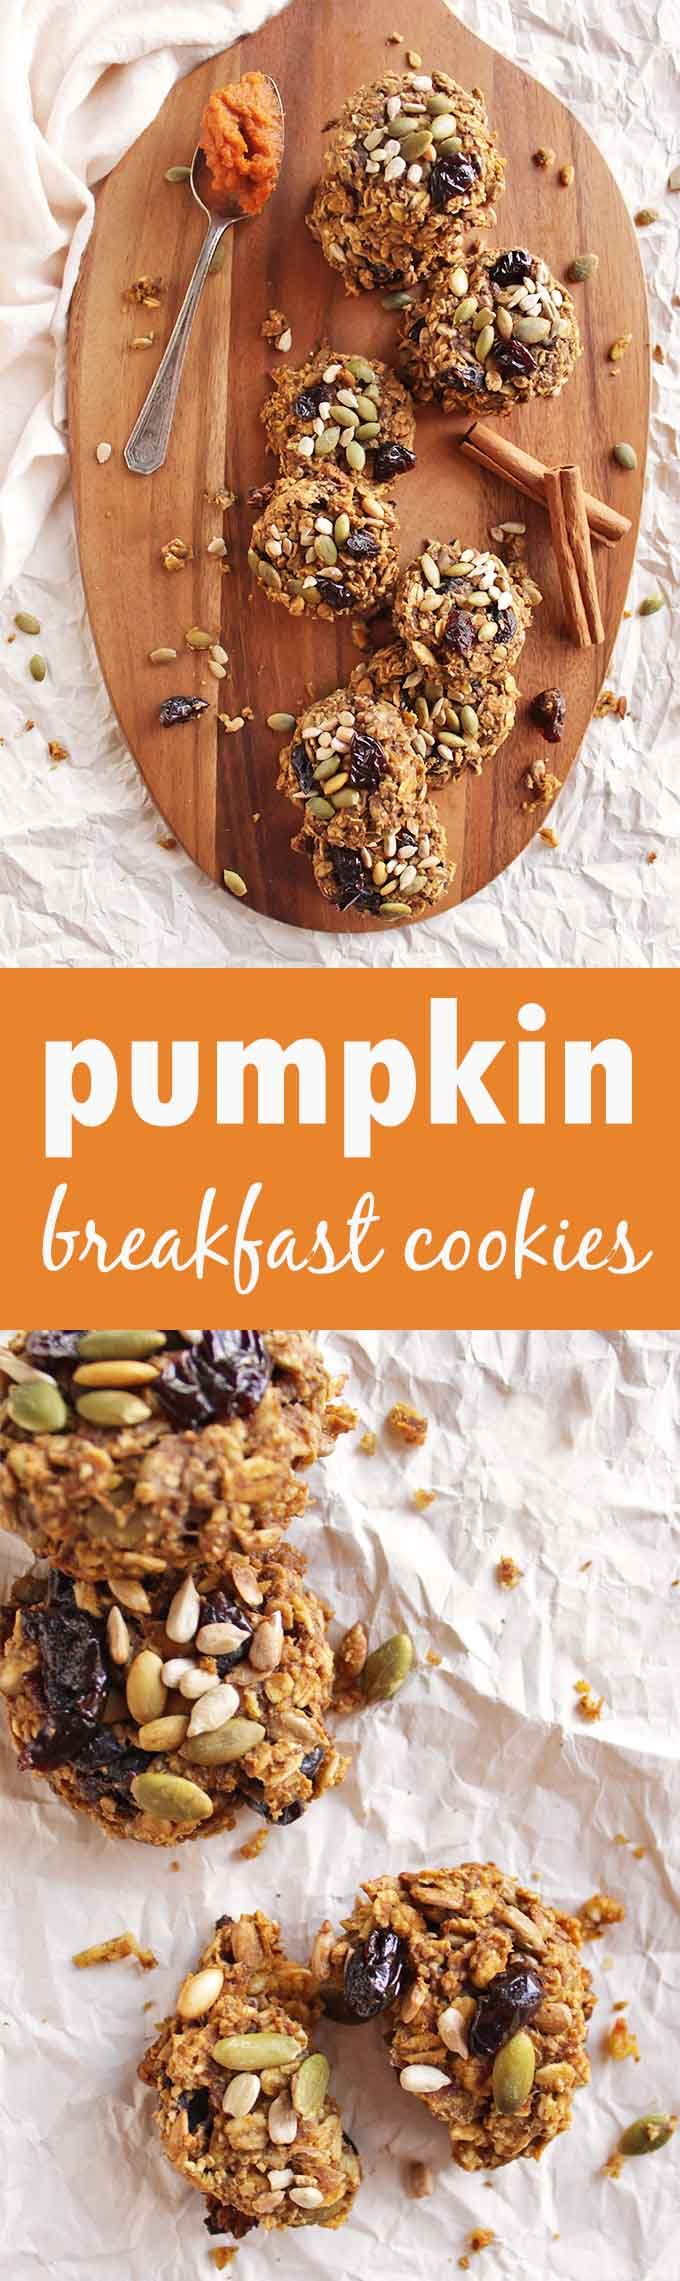 Pumpkin breakfast cookies are packed with nutrient dense ingredients to give you energy. They are made with REAL pumpkin. and packed with all those warming spices. Perfect fall recipe! (gluten free/vegan/dairy free) | robustrecipes,.com